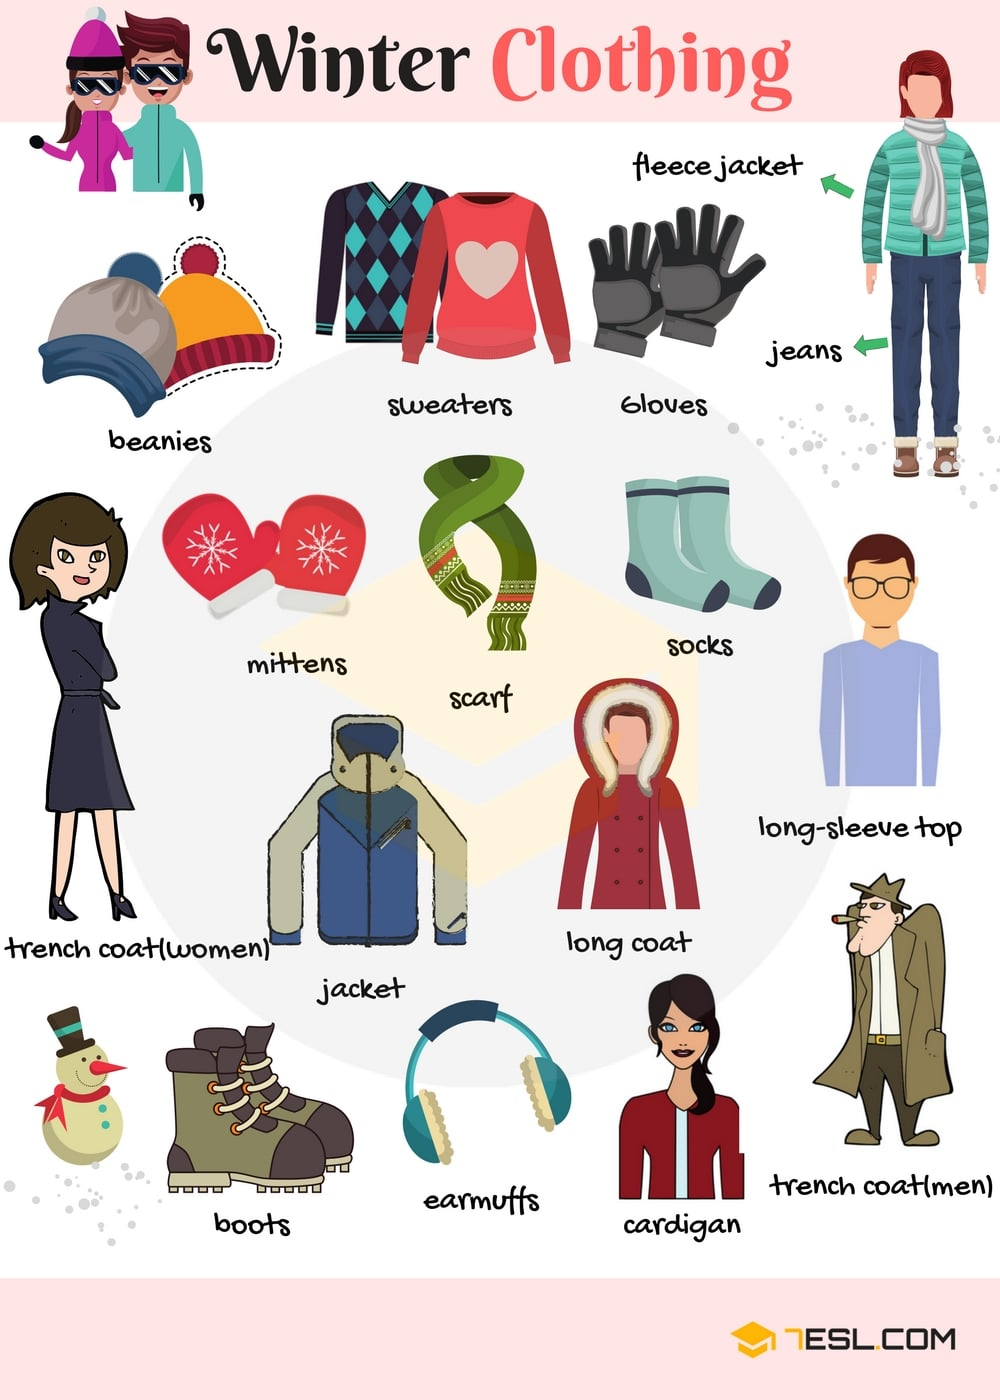 Learn Clothes and Accessories Vocabulary in English 4